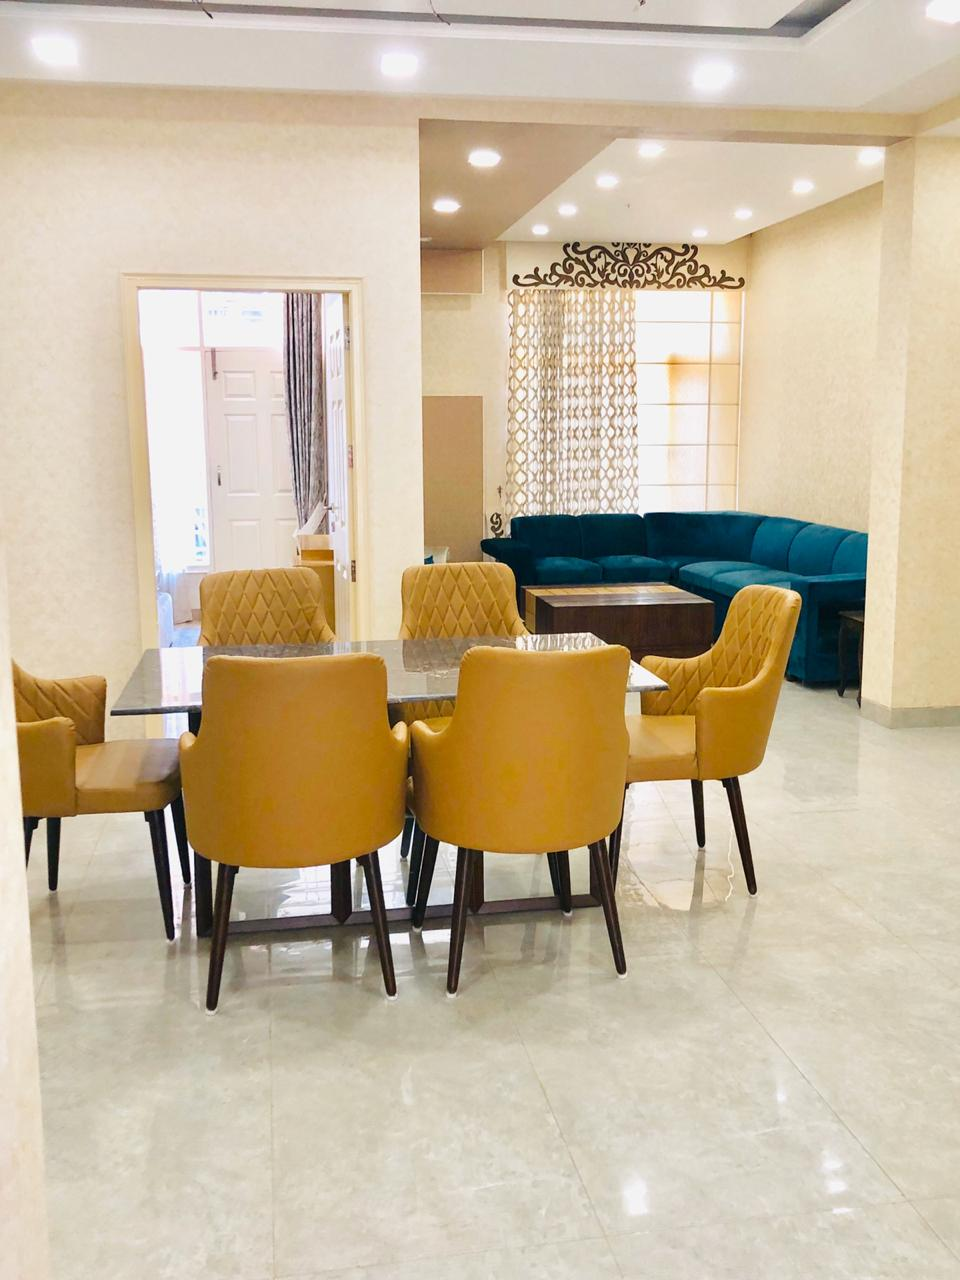 3 Bhk Flat with Lift Facility